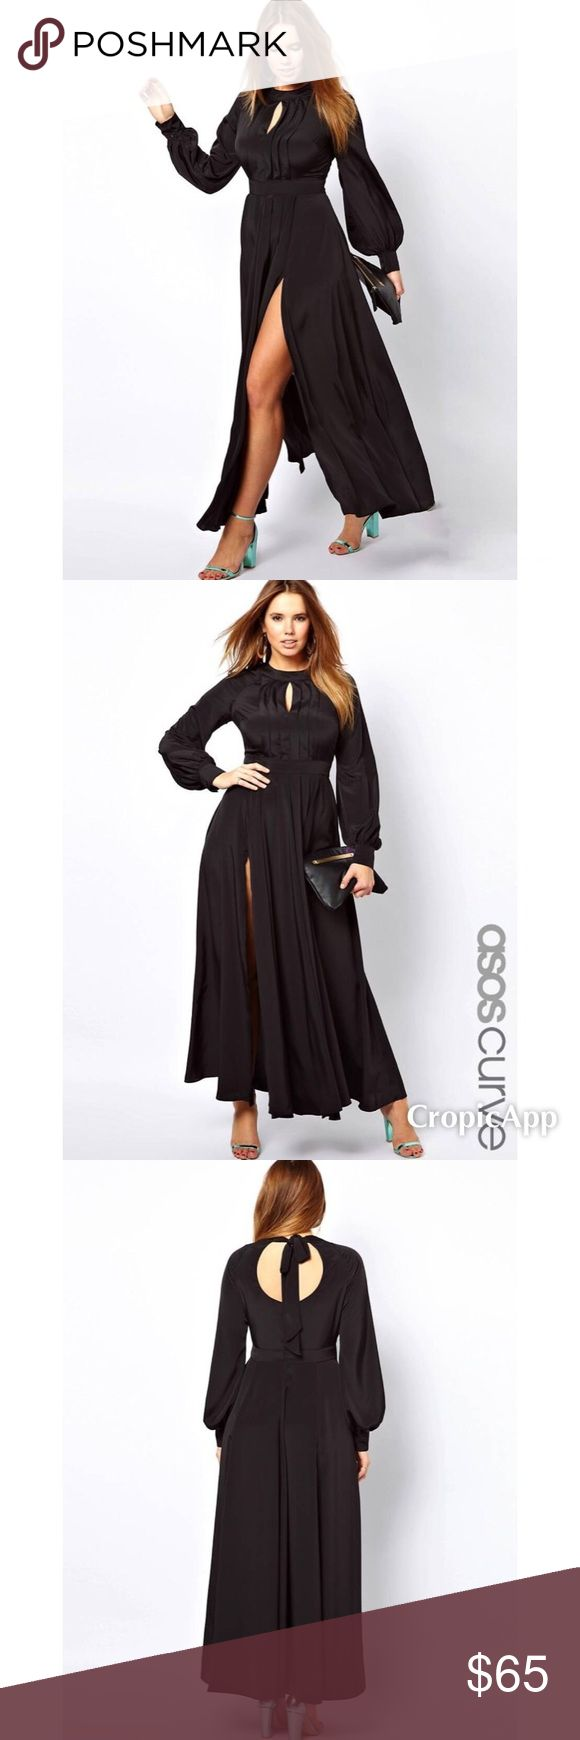 ASOS Curve Maxi Dress With Bell Sleeve - Black ASOS Curve Maxi Dress With Bell Sleeve - Black / US 16 - like new.                                                                PLUS SIZE DRESS by ASOS CURVE -	Made from a soft poly fabric -	Crew neckline with cut out detail -	Pleat detail to the chest -	Self-tie closure to the back -	Fitted band under the bust -	Bell sleeves with fitted button cuffs -	Pleated fluid skirt -	Thigh splits -	Regular fit…